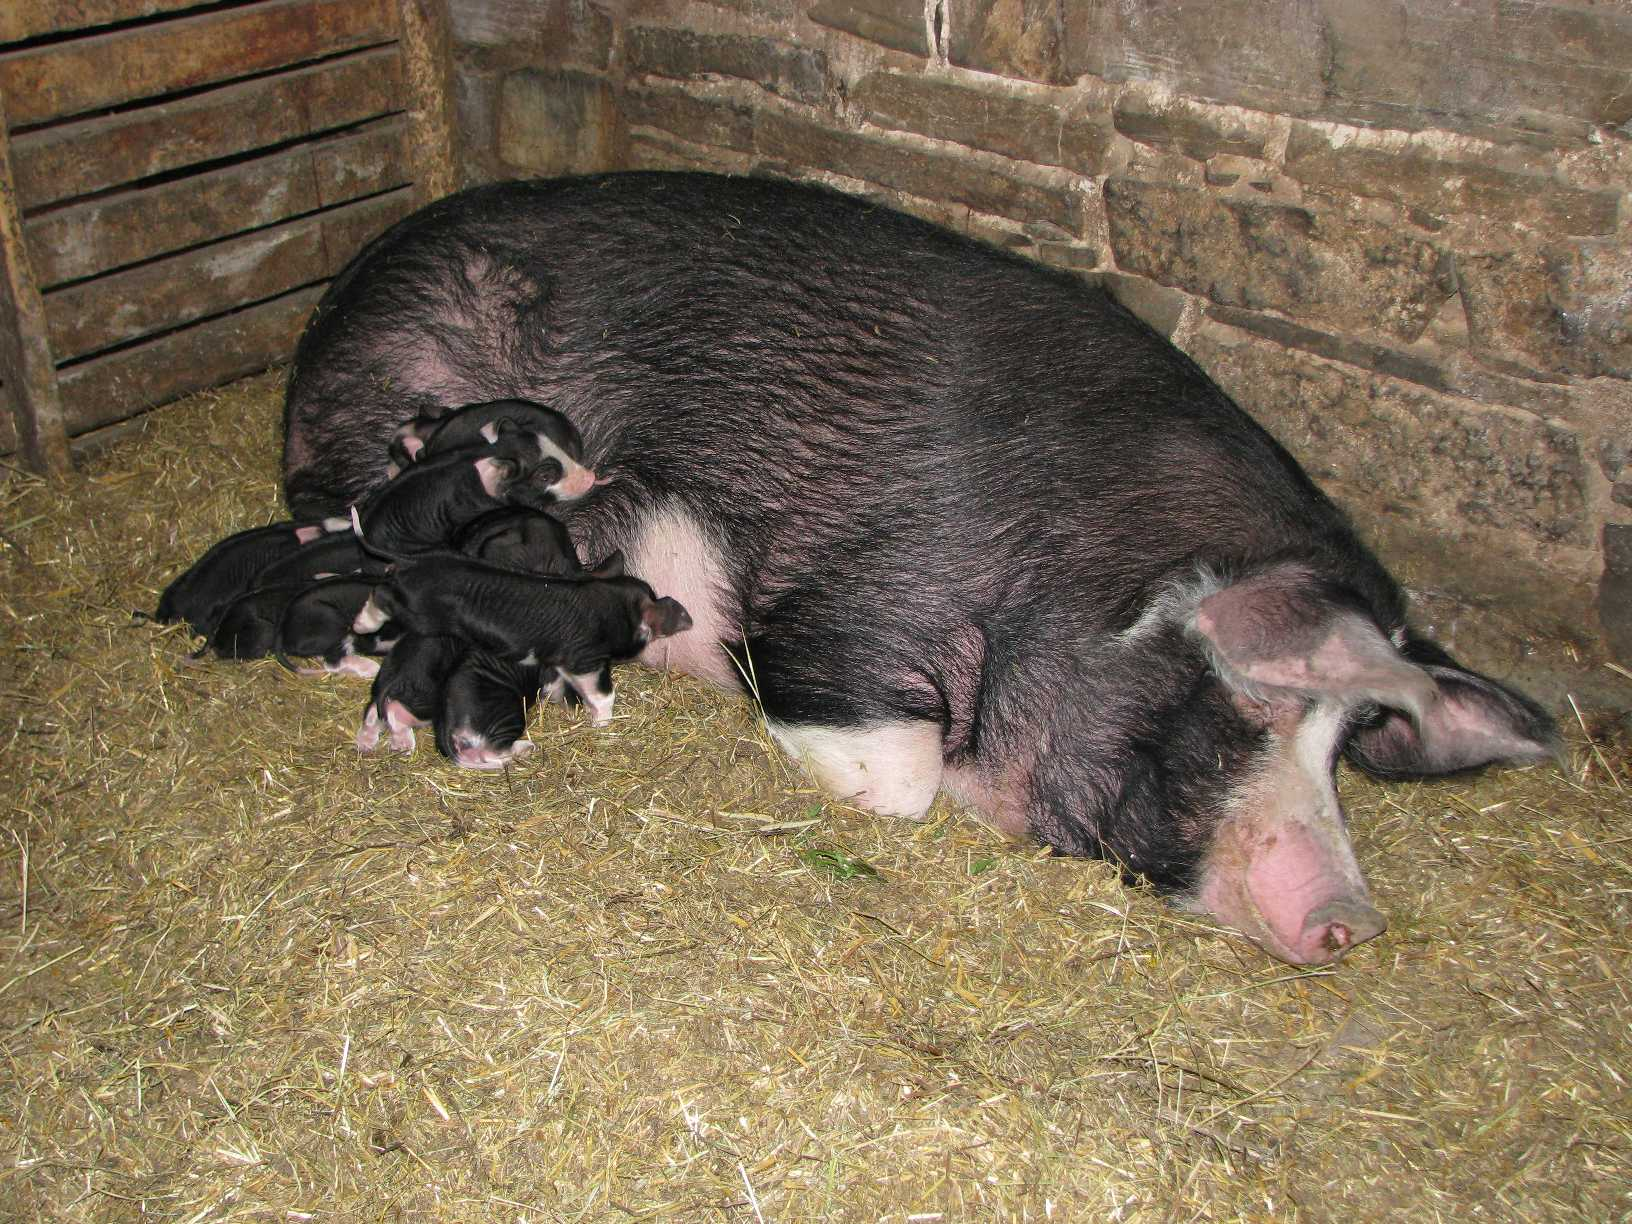 Berkshire sow and 2-day old piglets